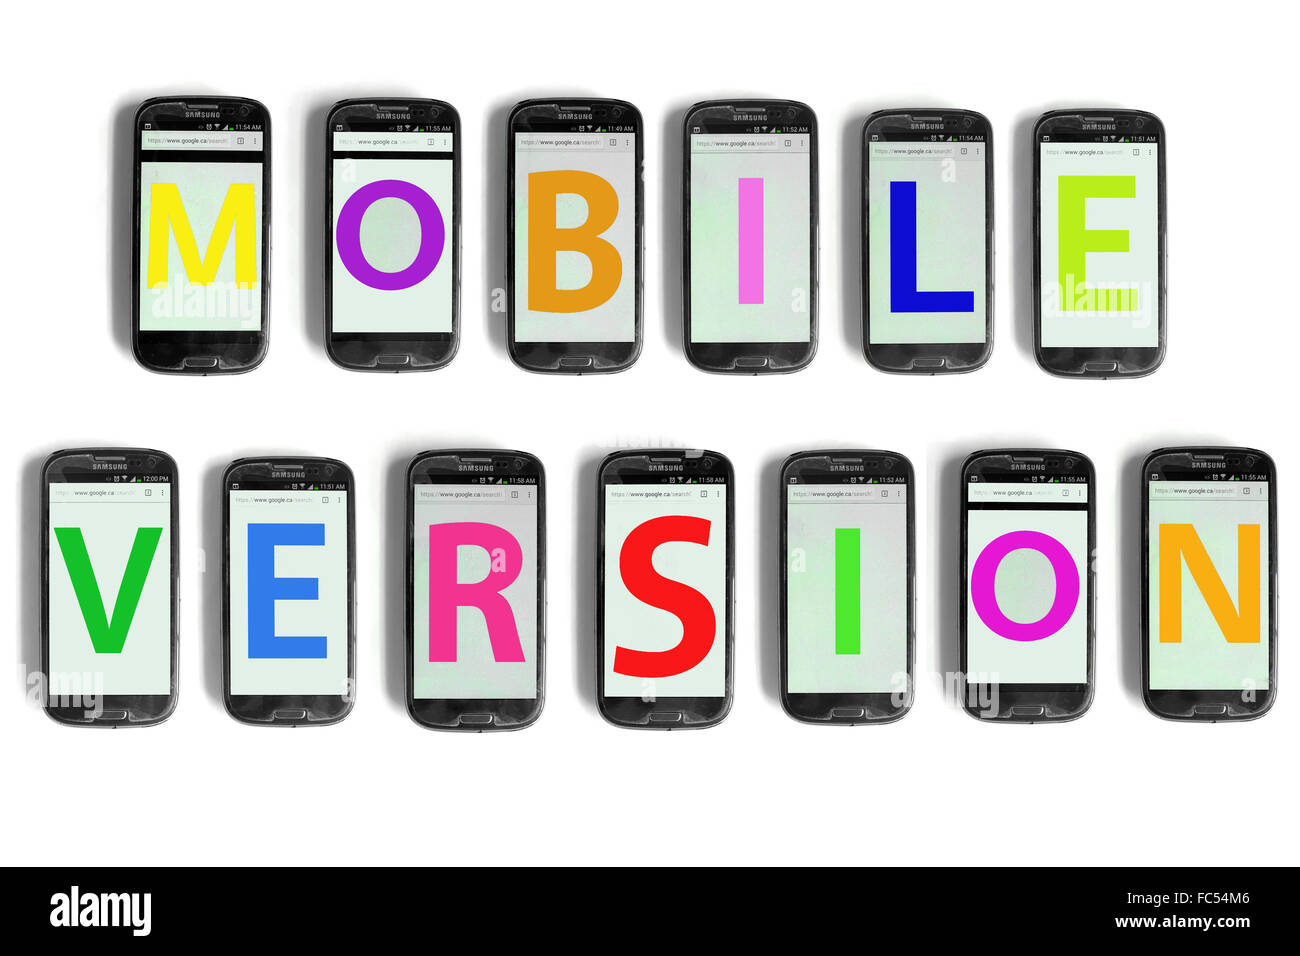 Mobile Version written on the screens of smartphones photographed against a white background. - Stock Image